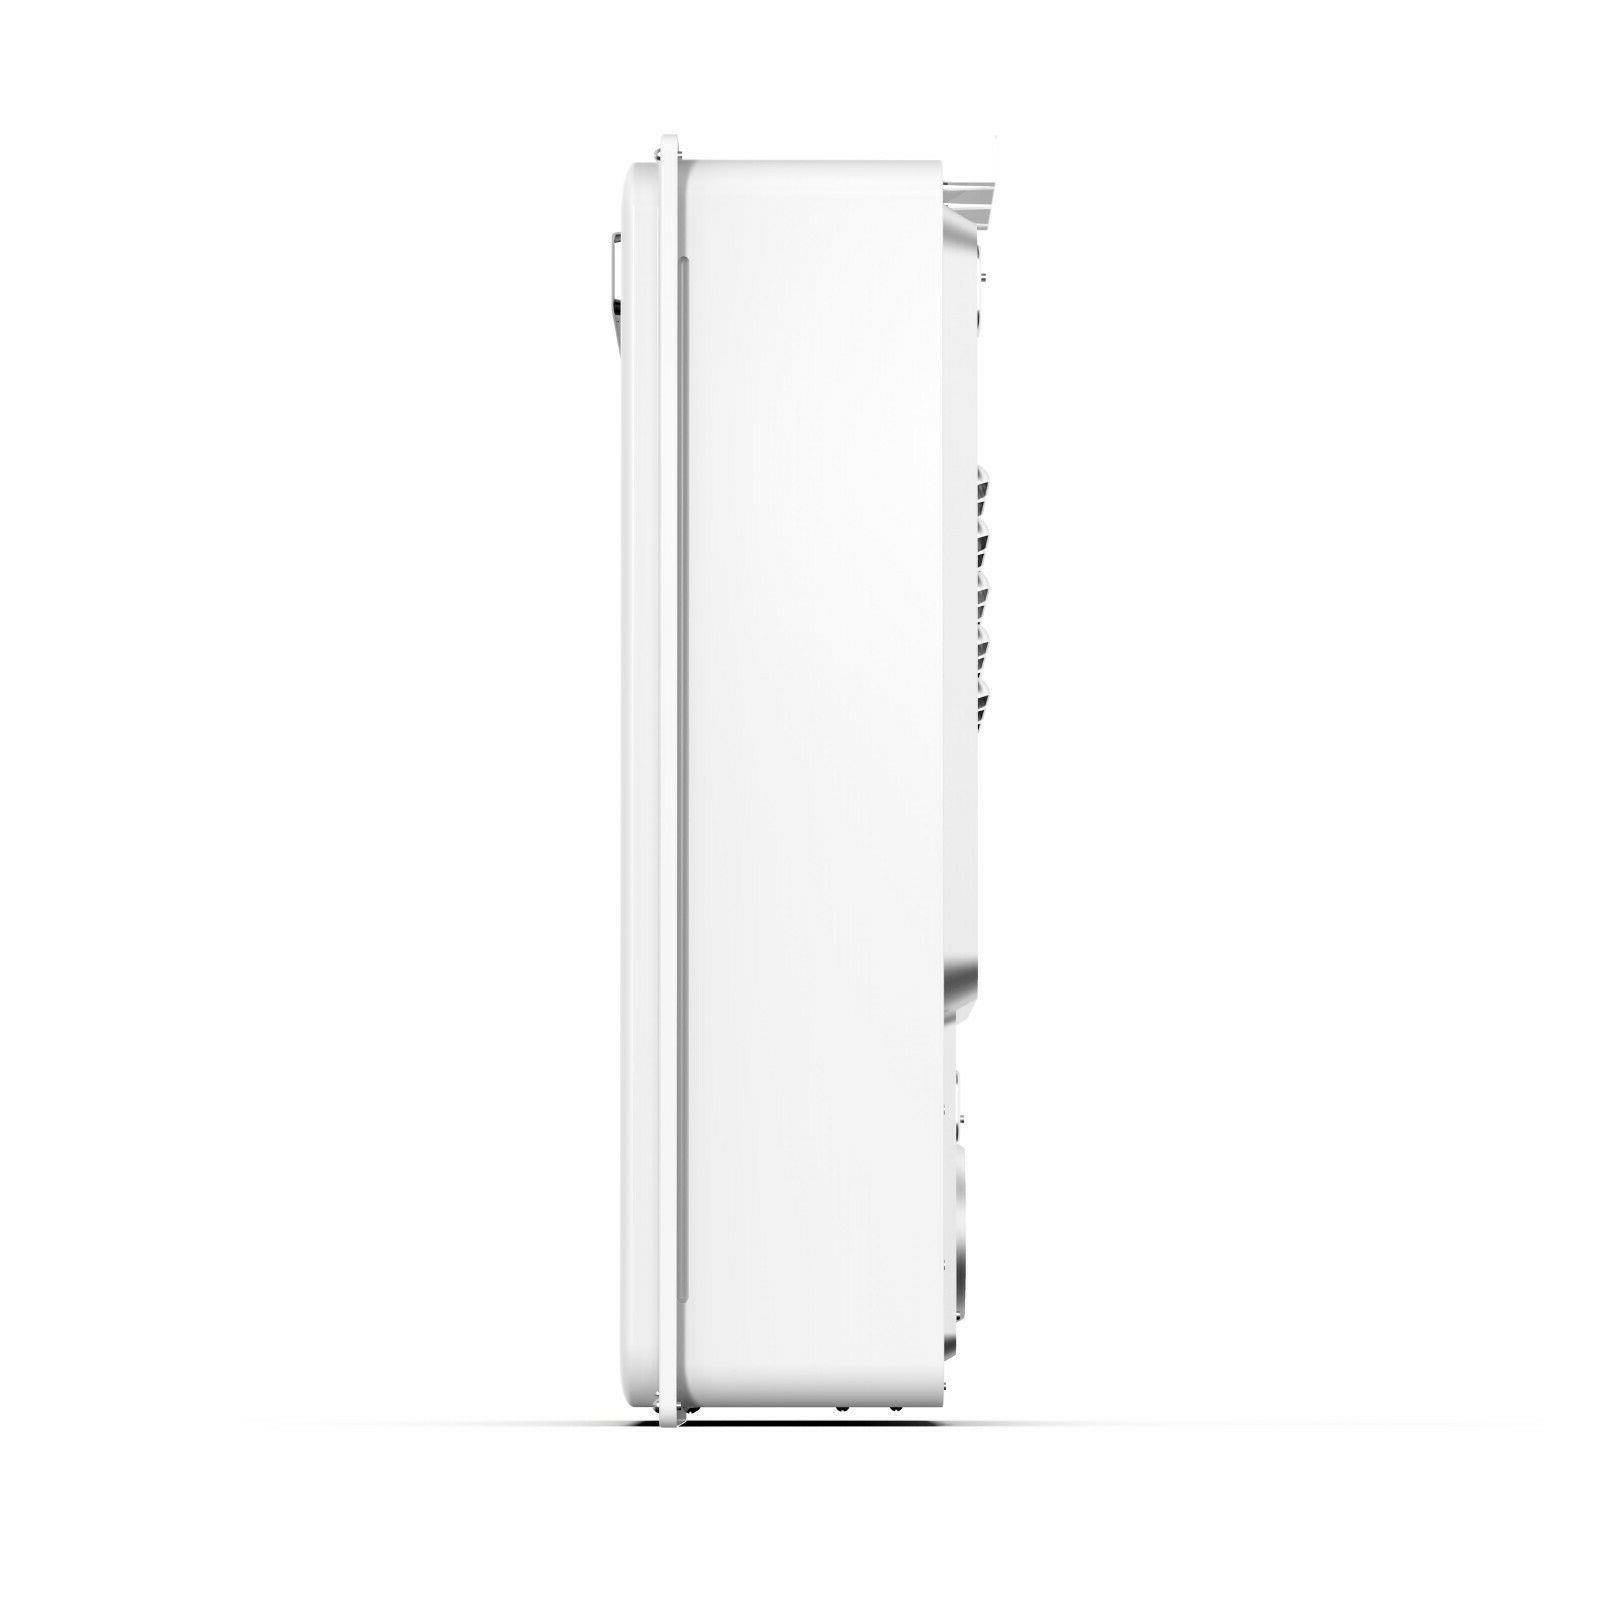 Eccotemp 6.8 GPM Natural Tankless Water